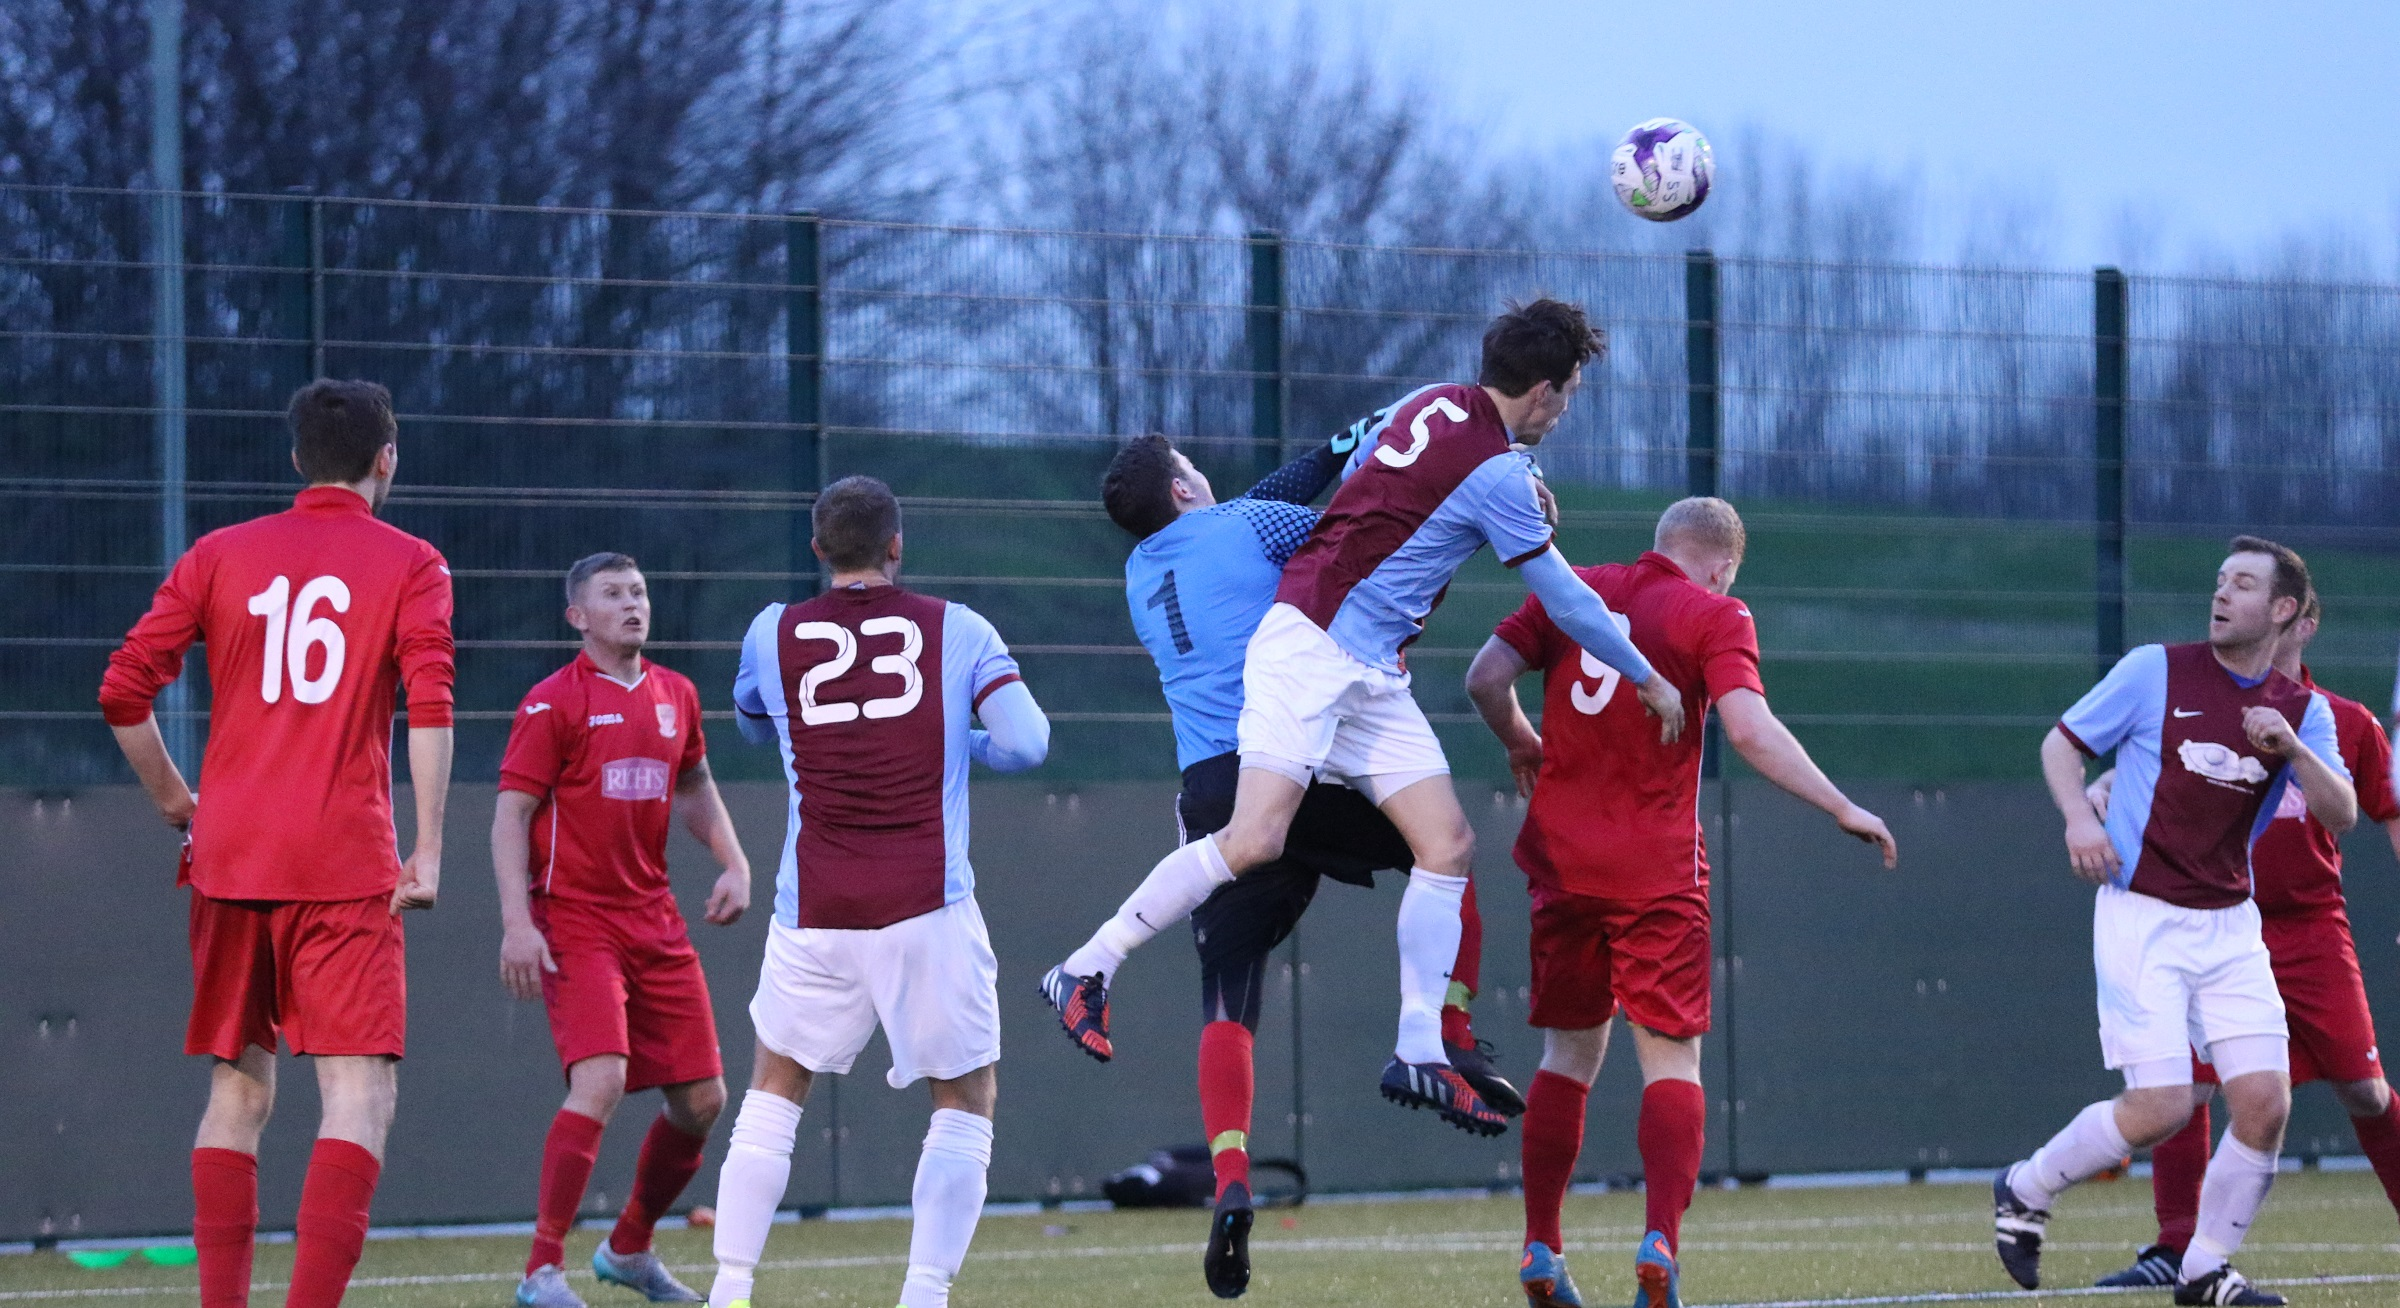 In Pictures: South Shields 3-1 Bedlington Terriers